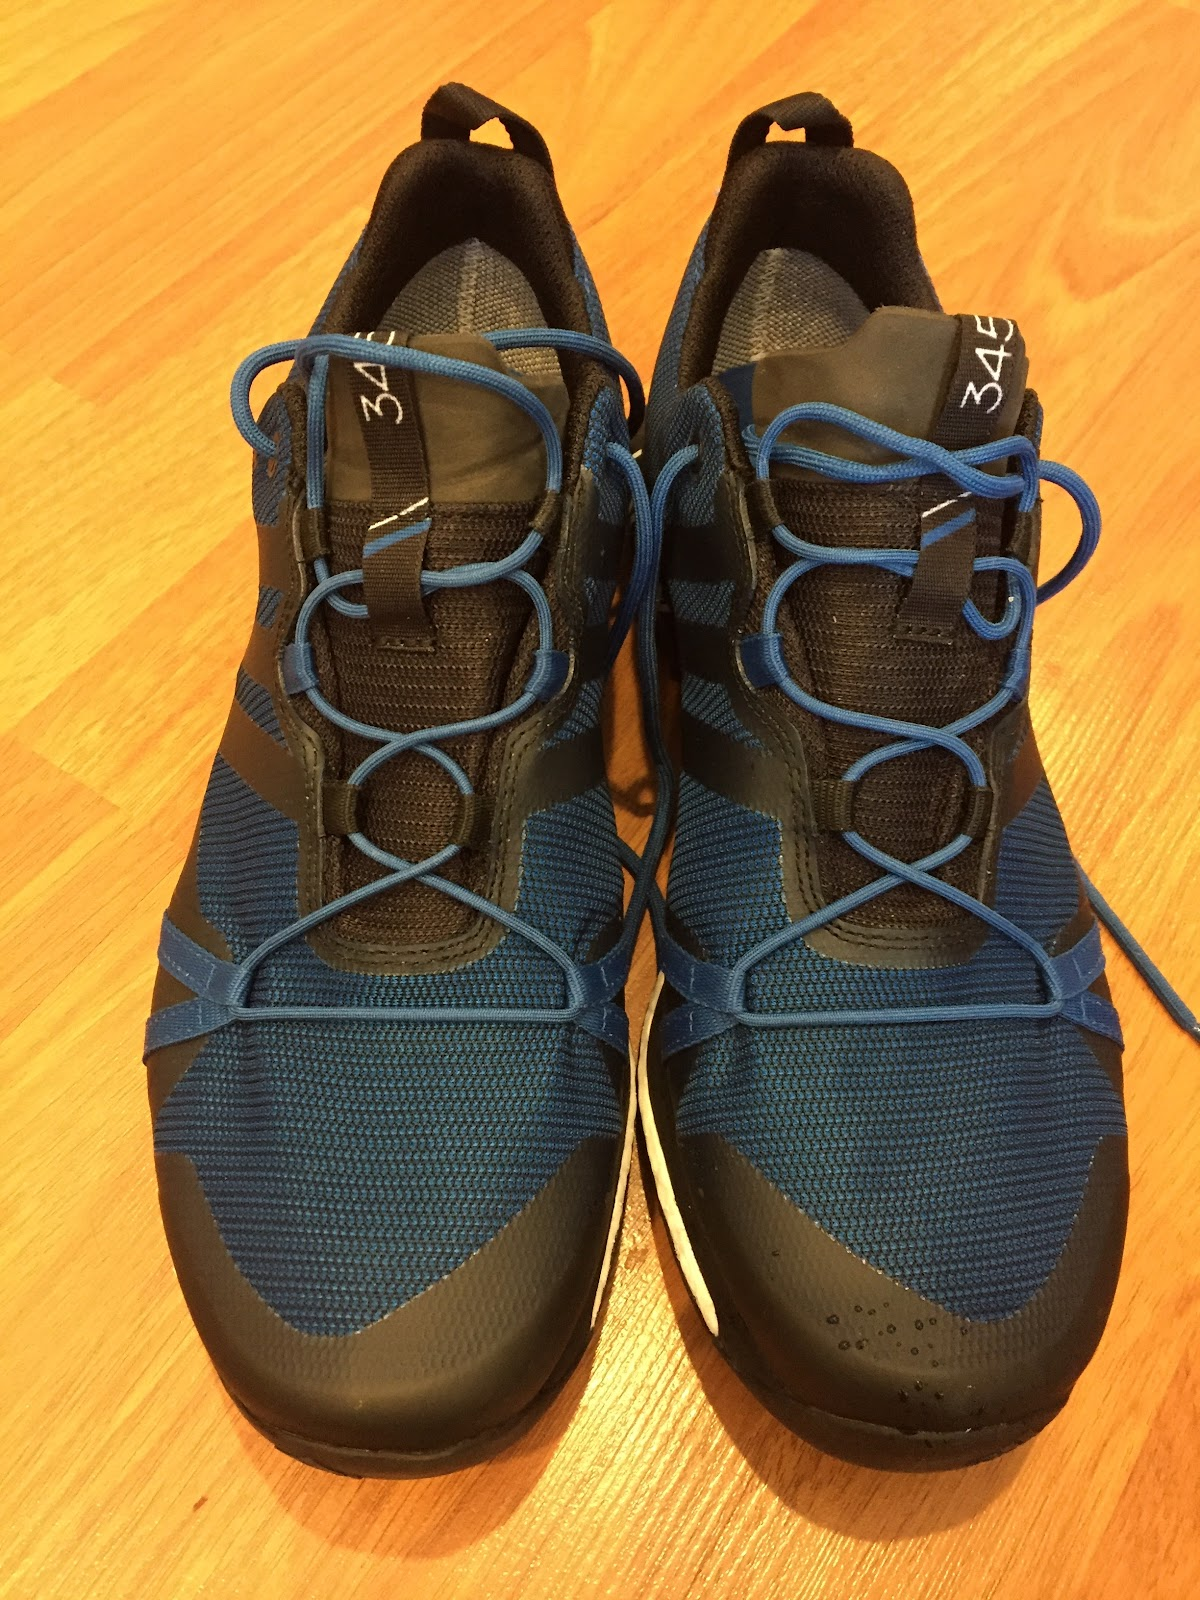 """cf83da2615fb5 Fit is true to size and I very much appreciate the improved """"normal"""" toe  box. I found the width to be perfect"""